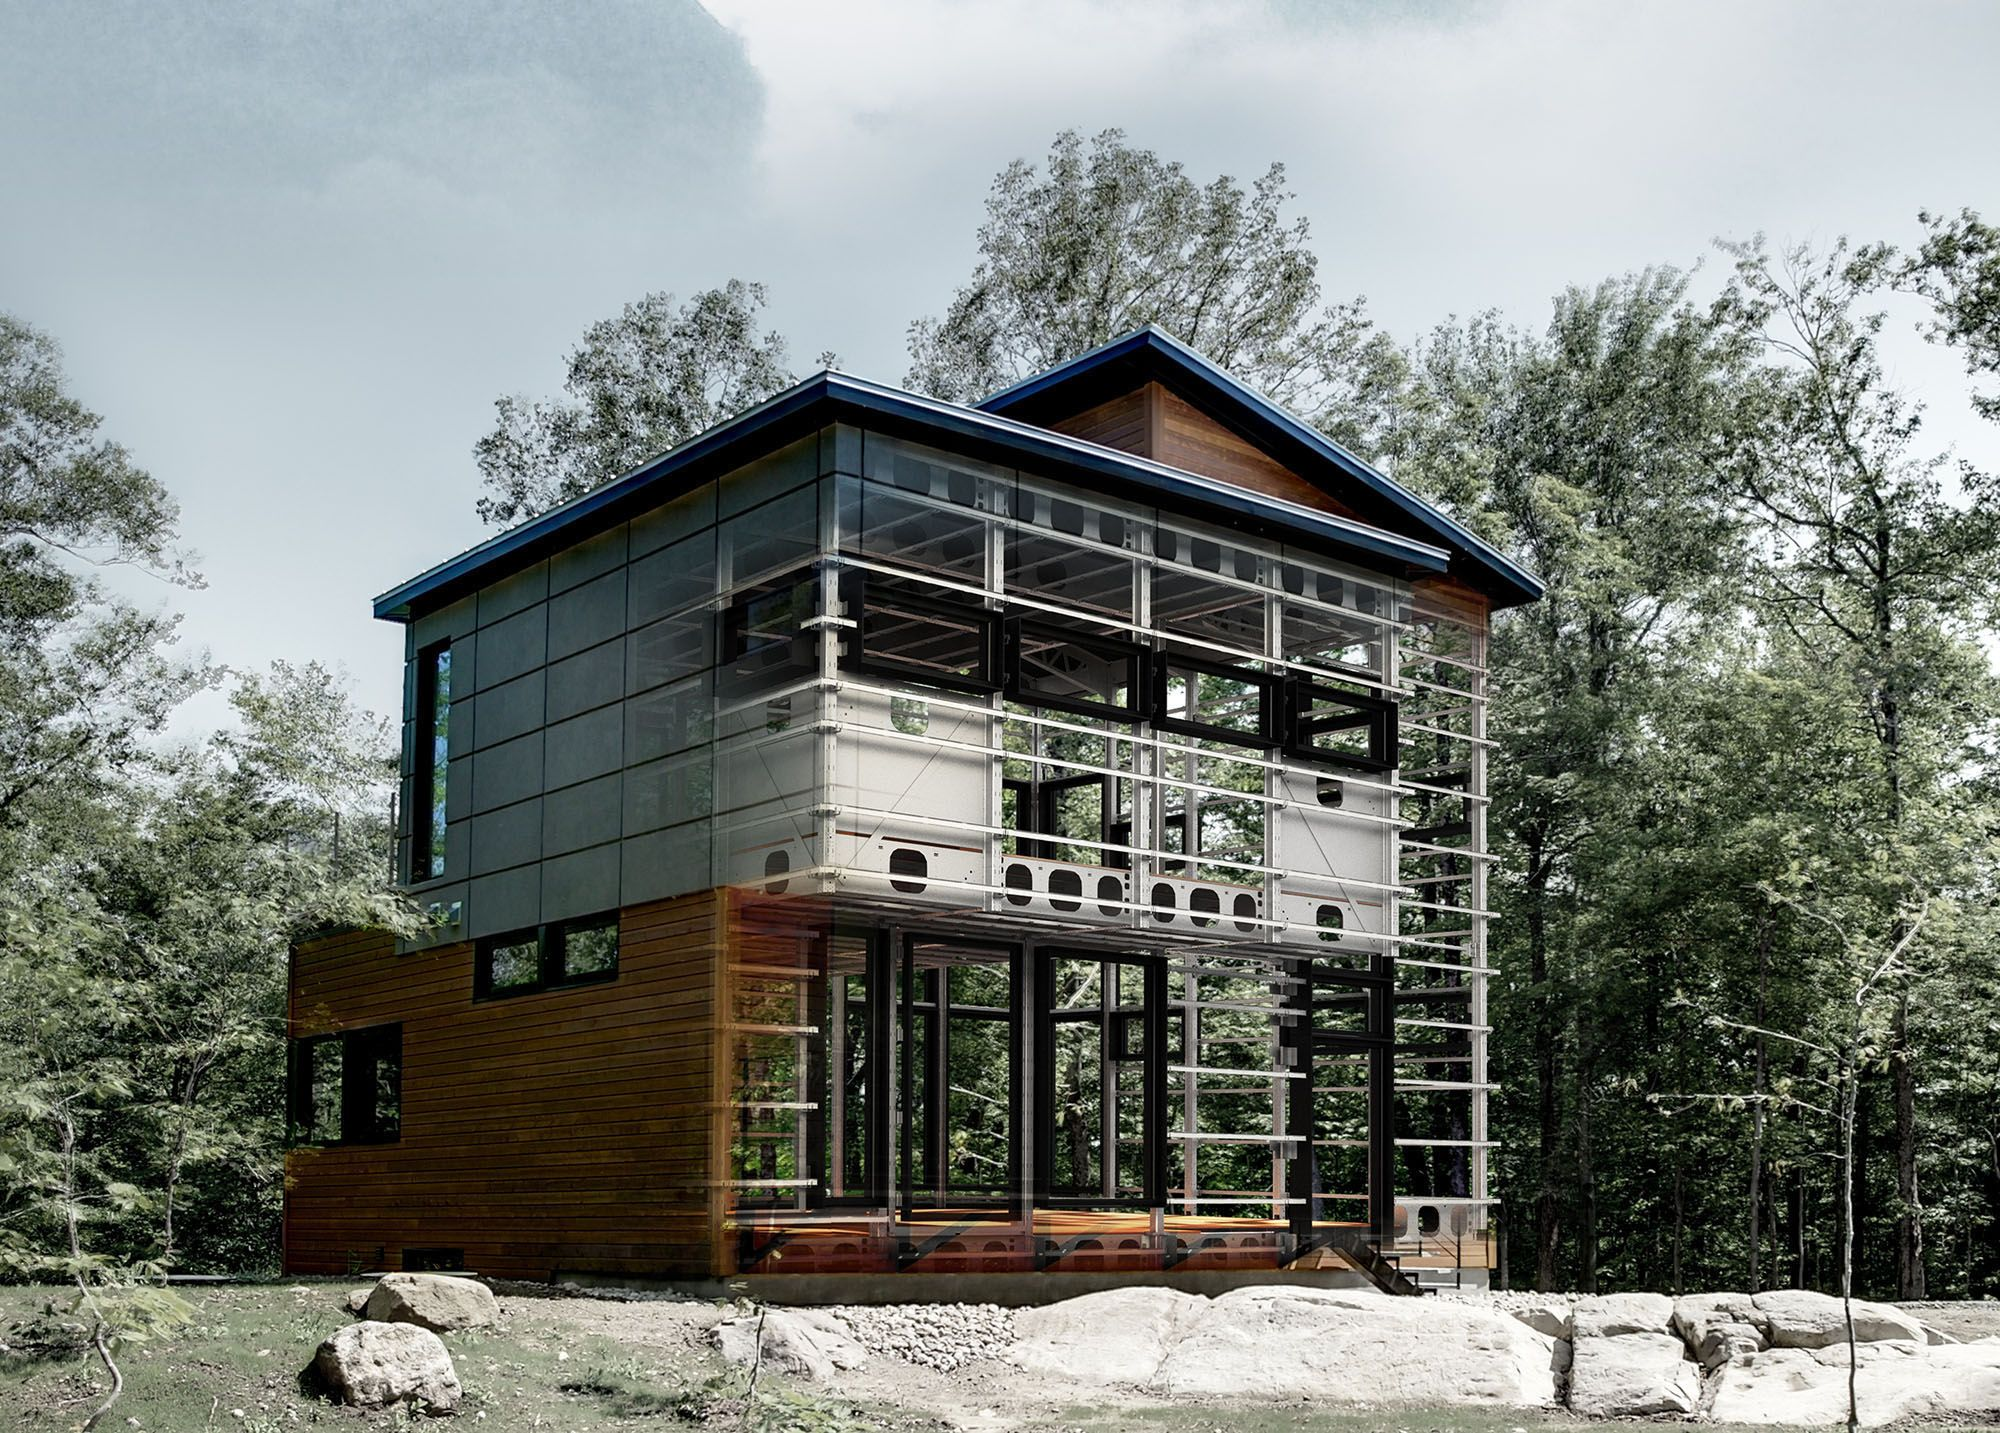 Steel Built Homes Bone Structure An Innovative Quebec Based Company That Builds